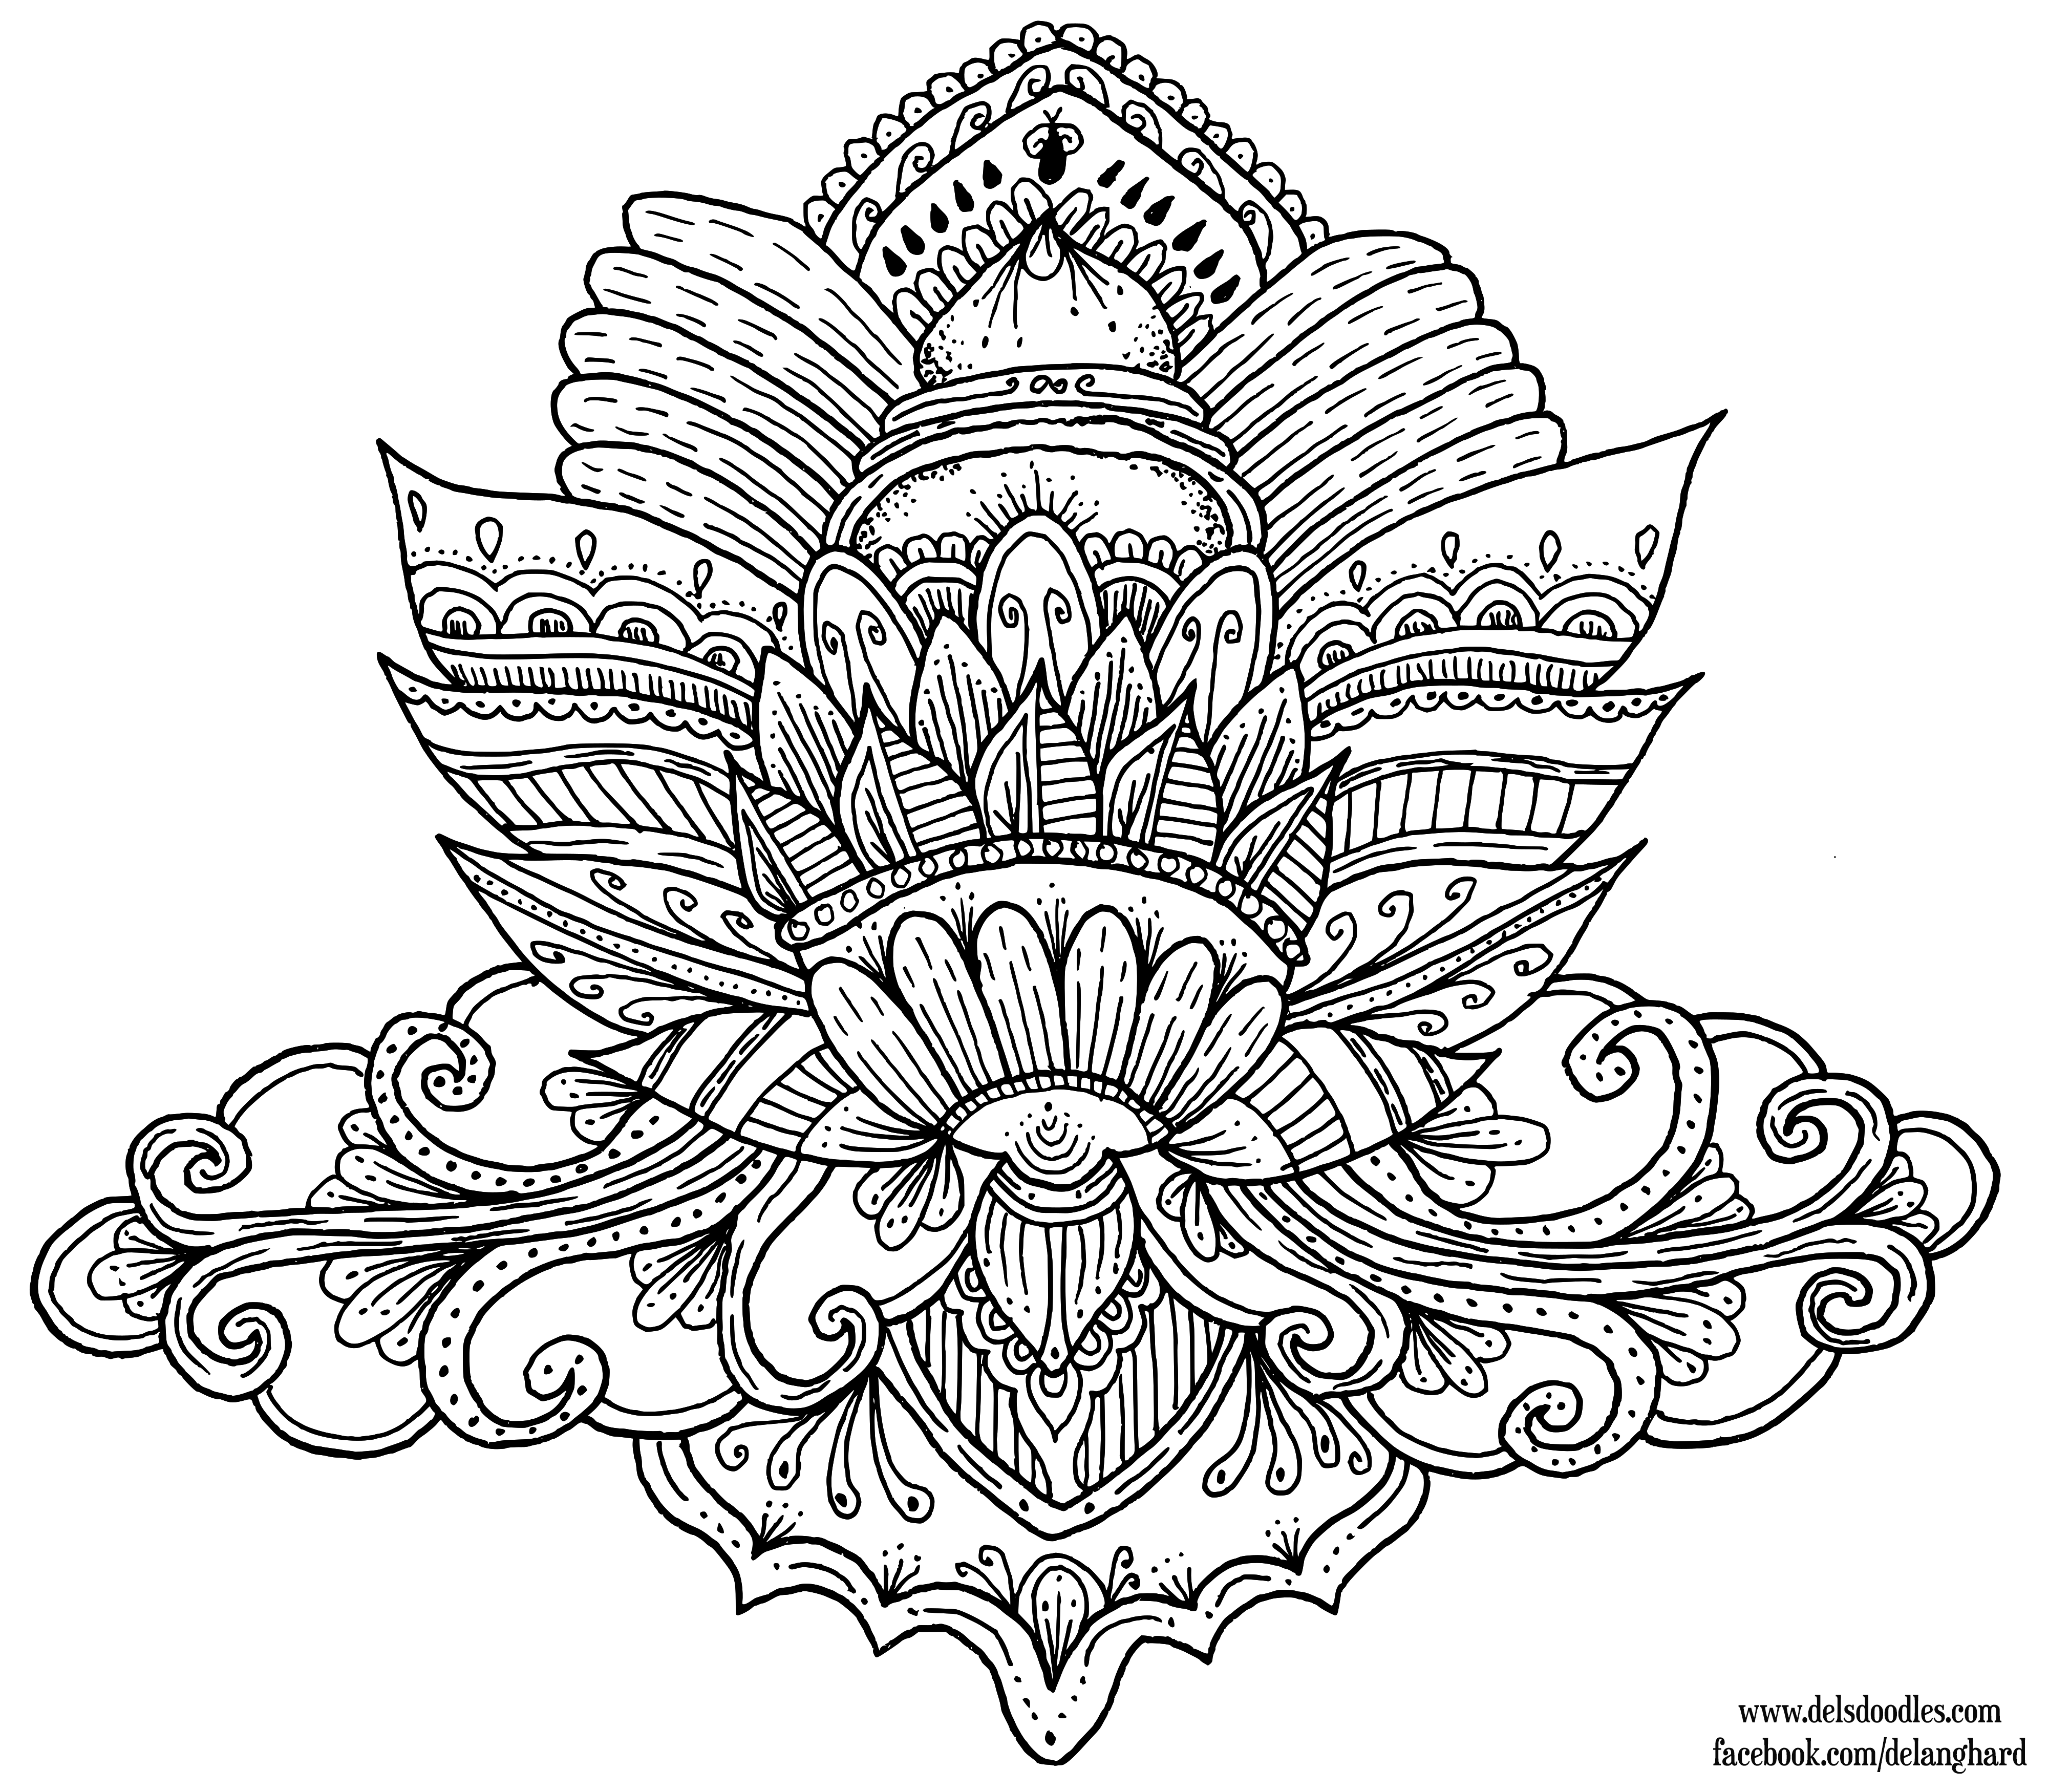 Lotus Colouring Page Coloring Pages Designs Coloring Books Flower Coloring Pages